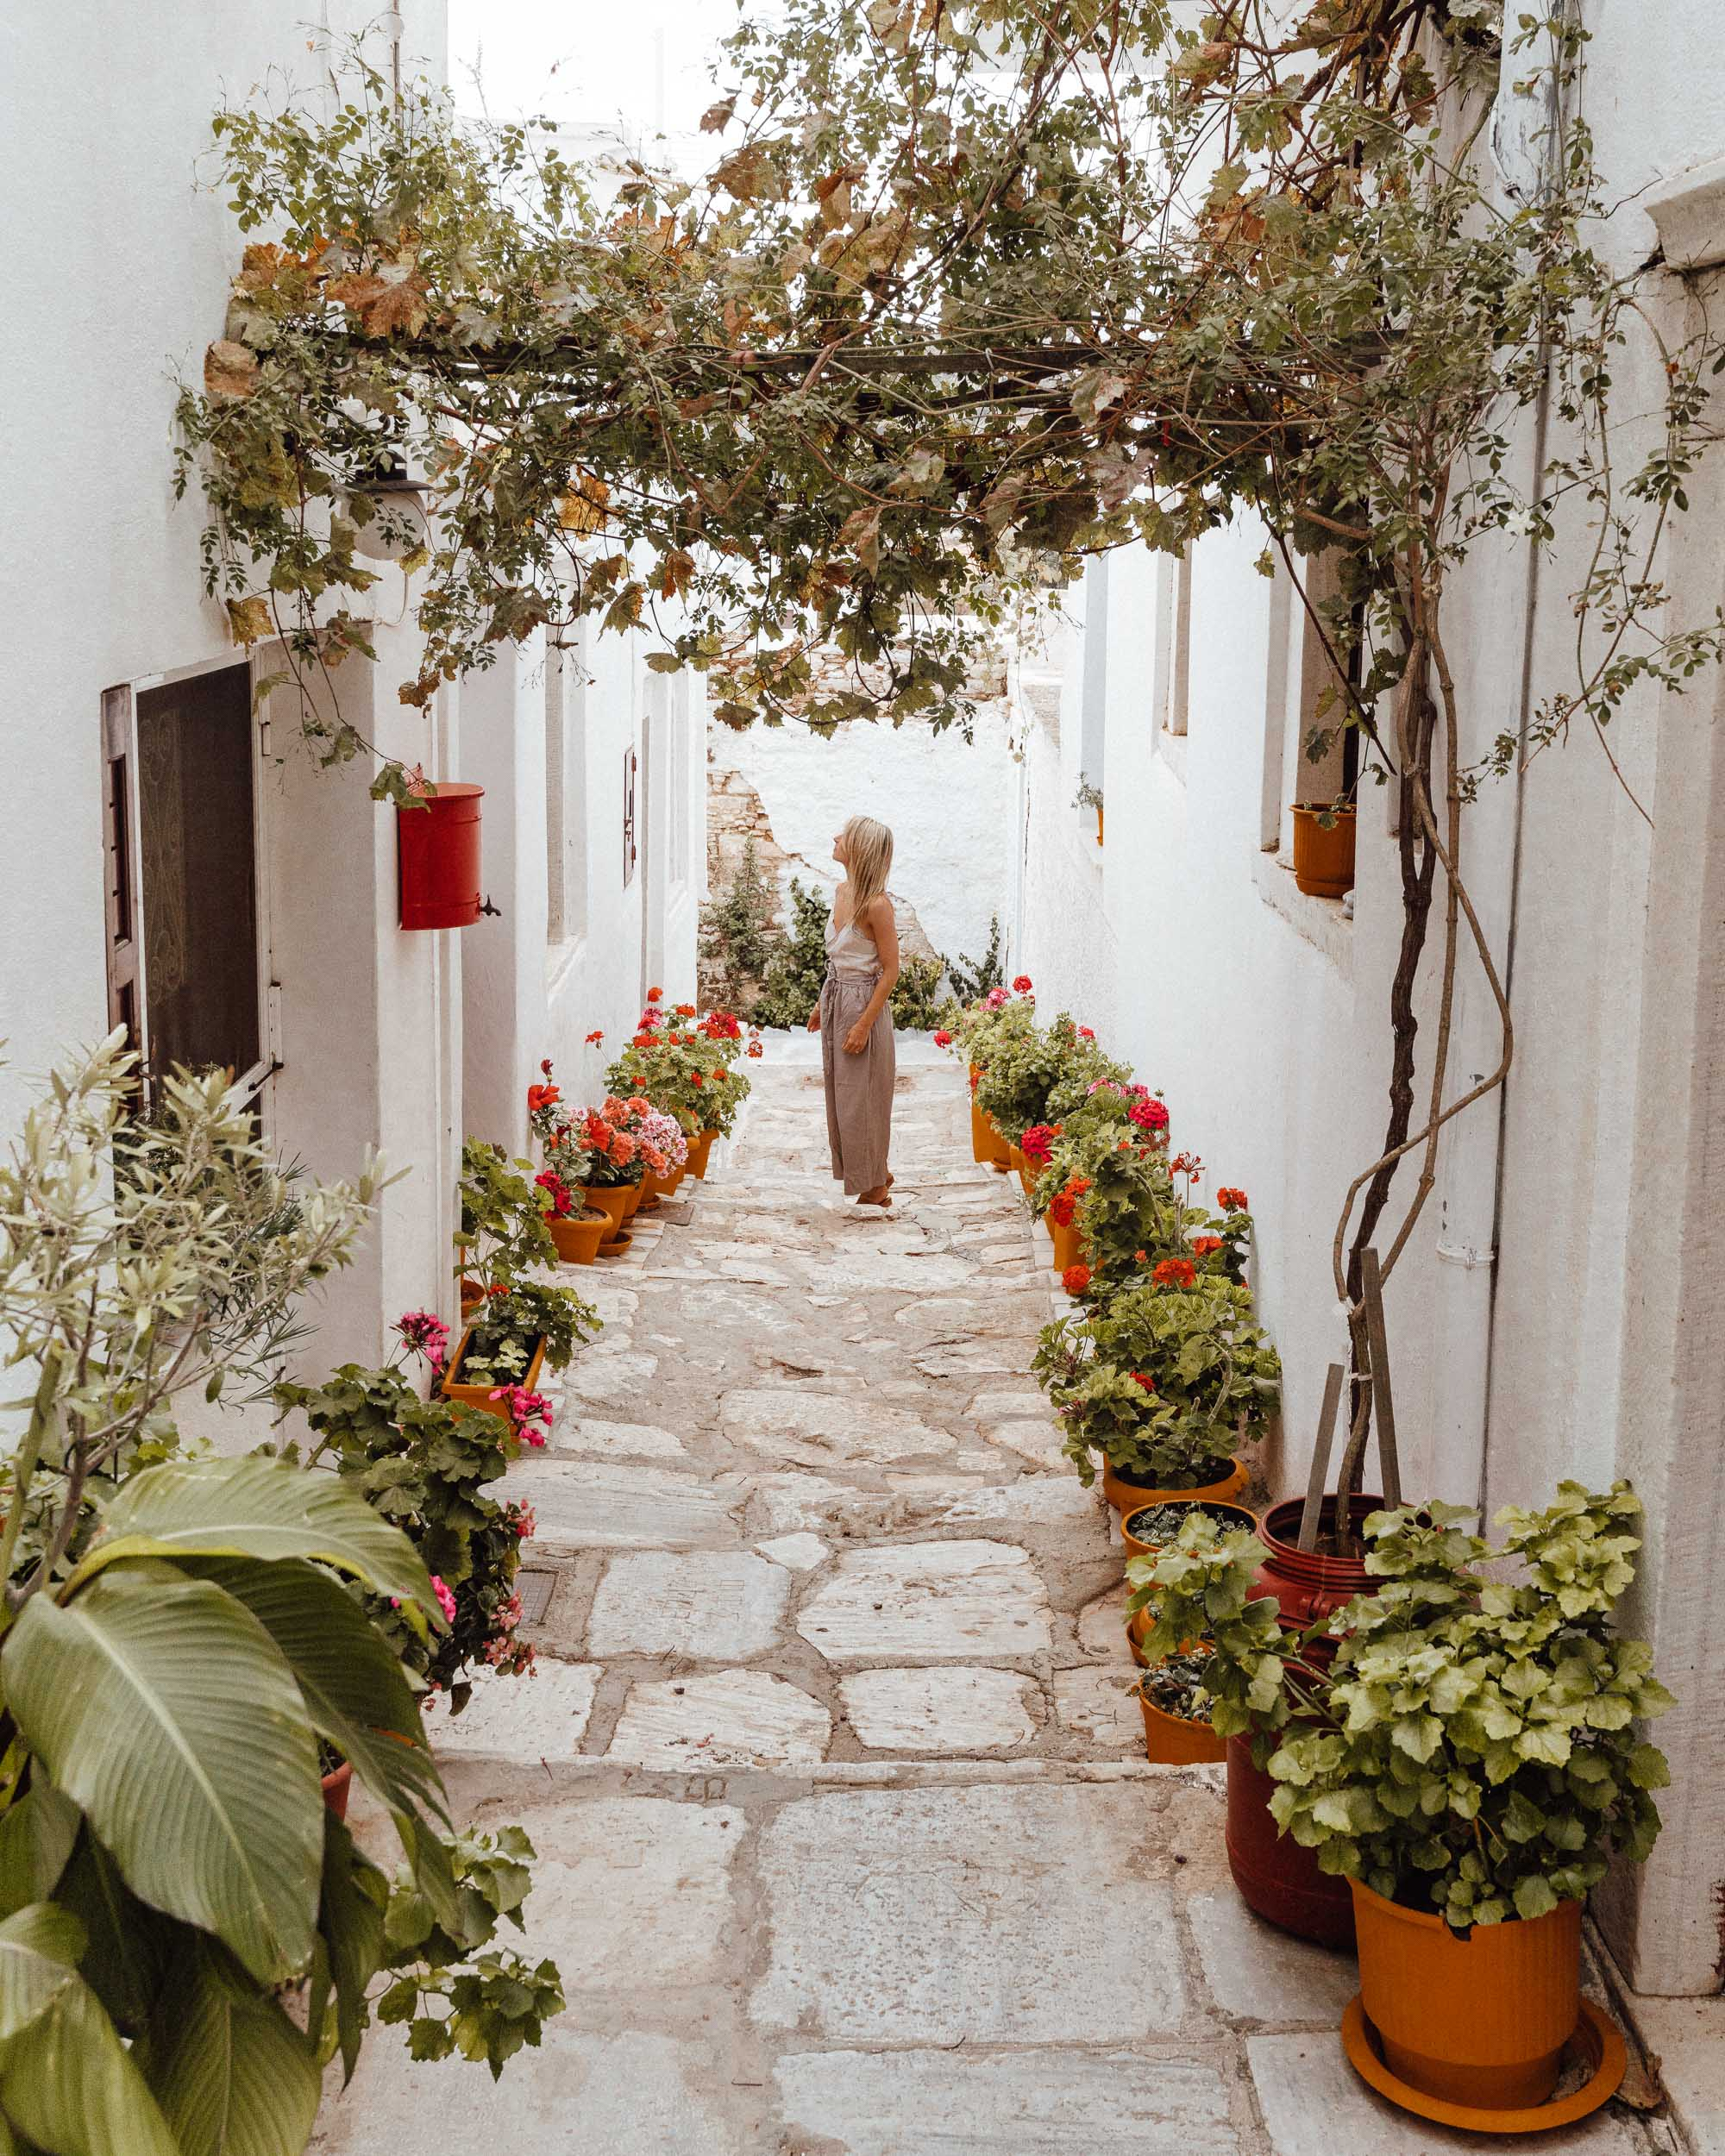 One of the best greek islands to visit - Naxos via @finduslost